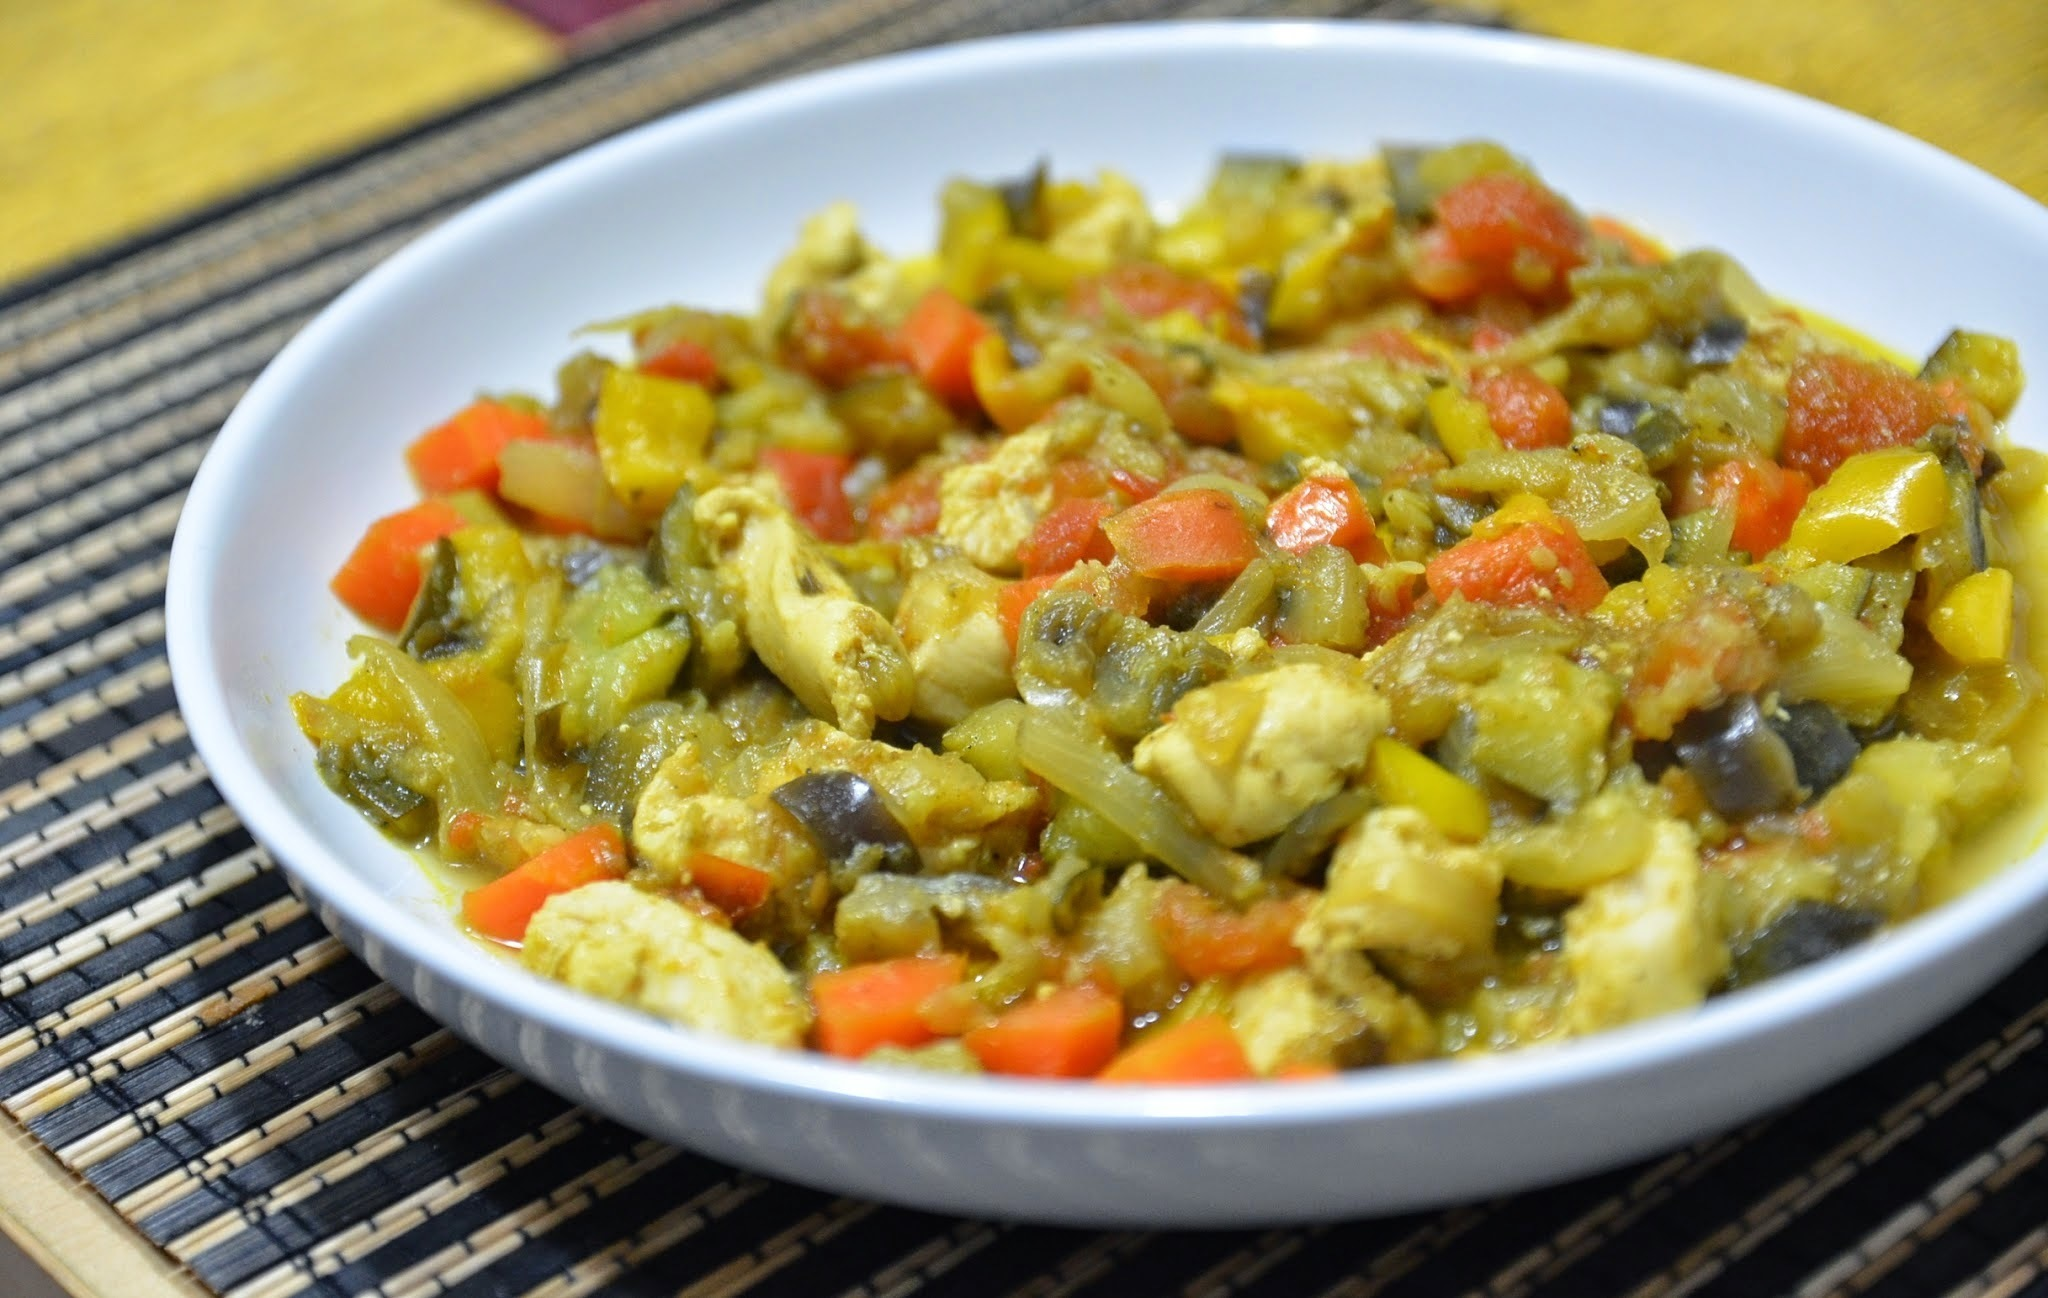 Petto di pollo con verdure al curry (4 blocchi)